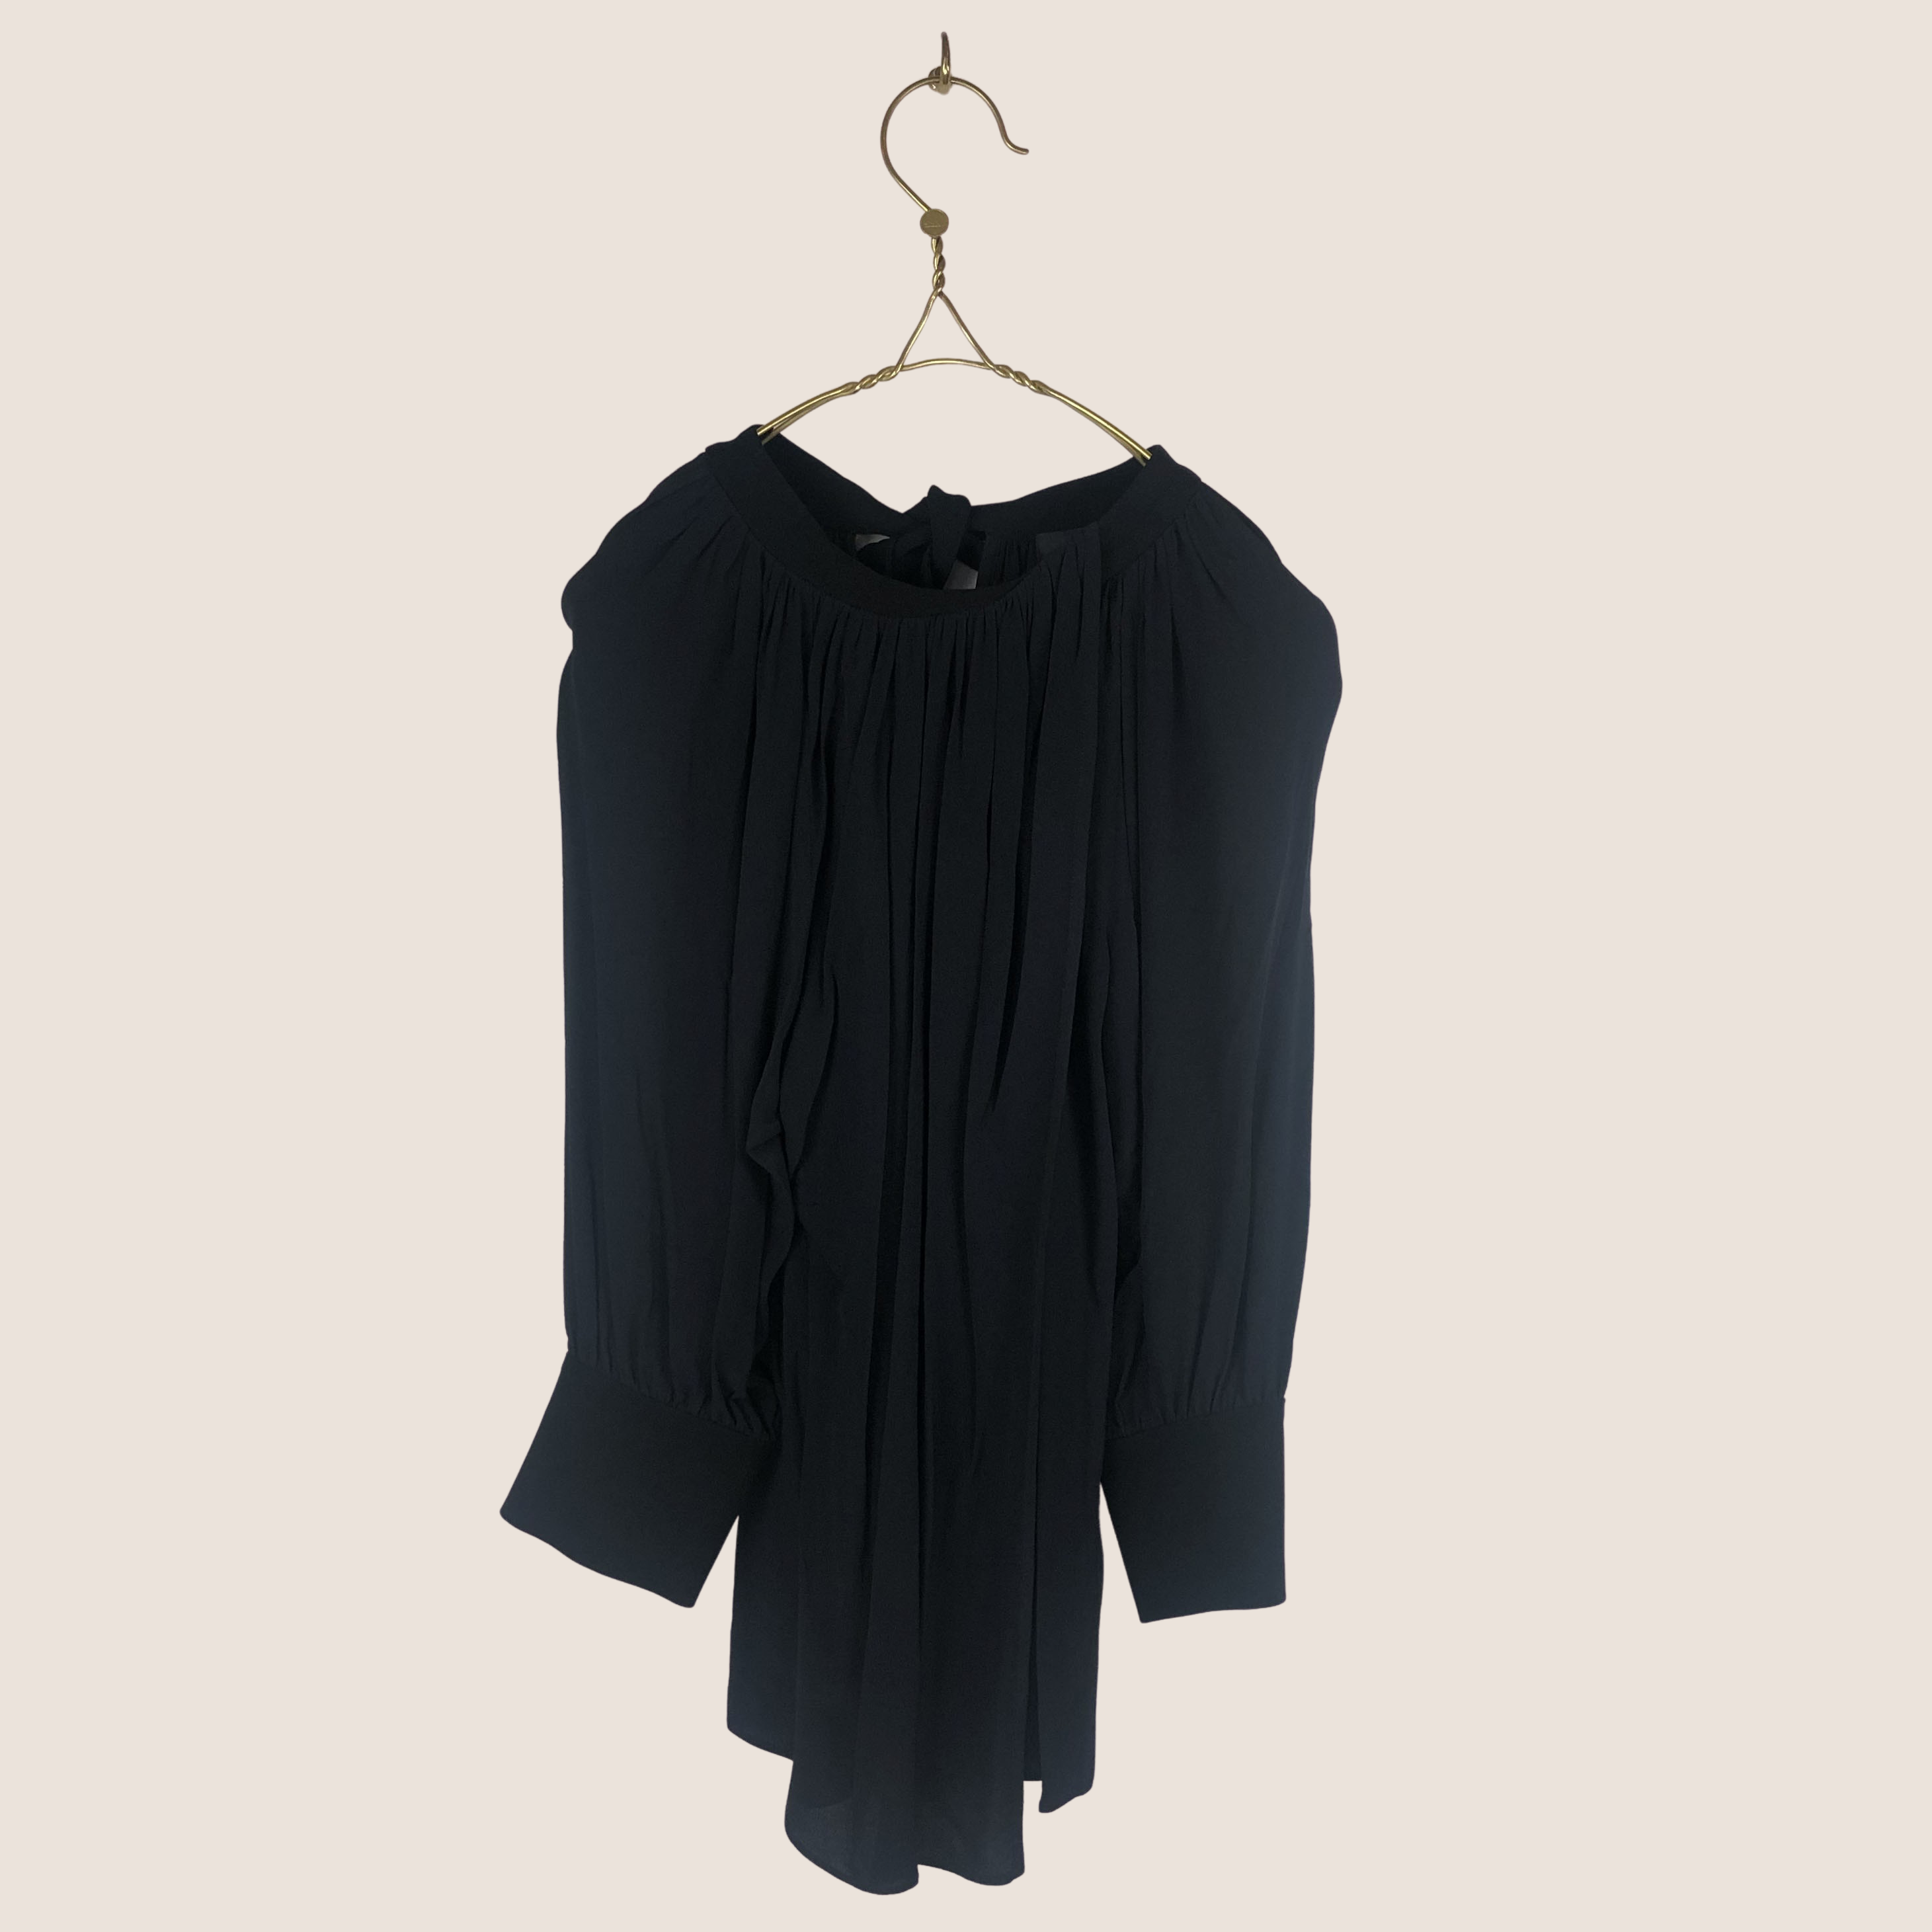 Proenza Schouler - Draped Top